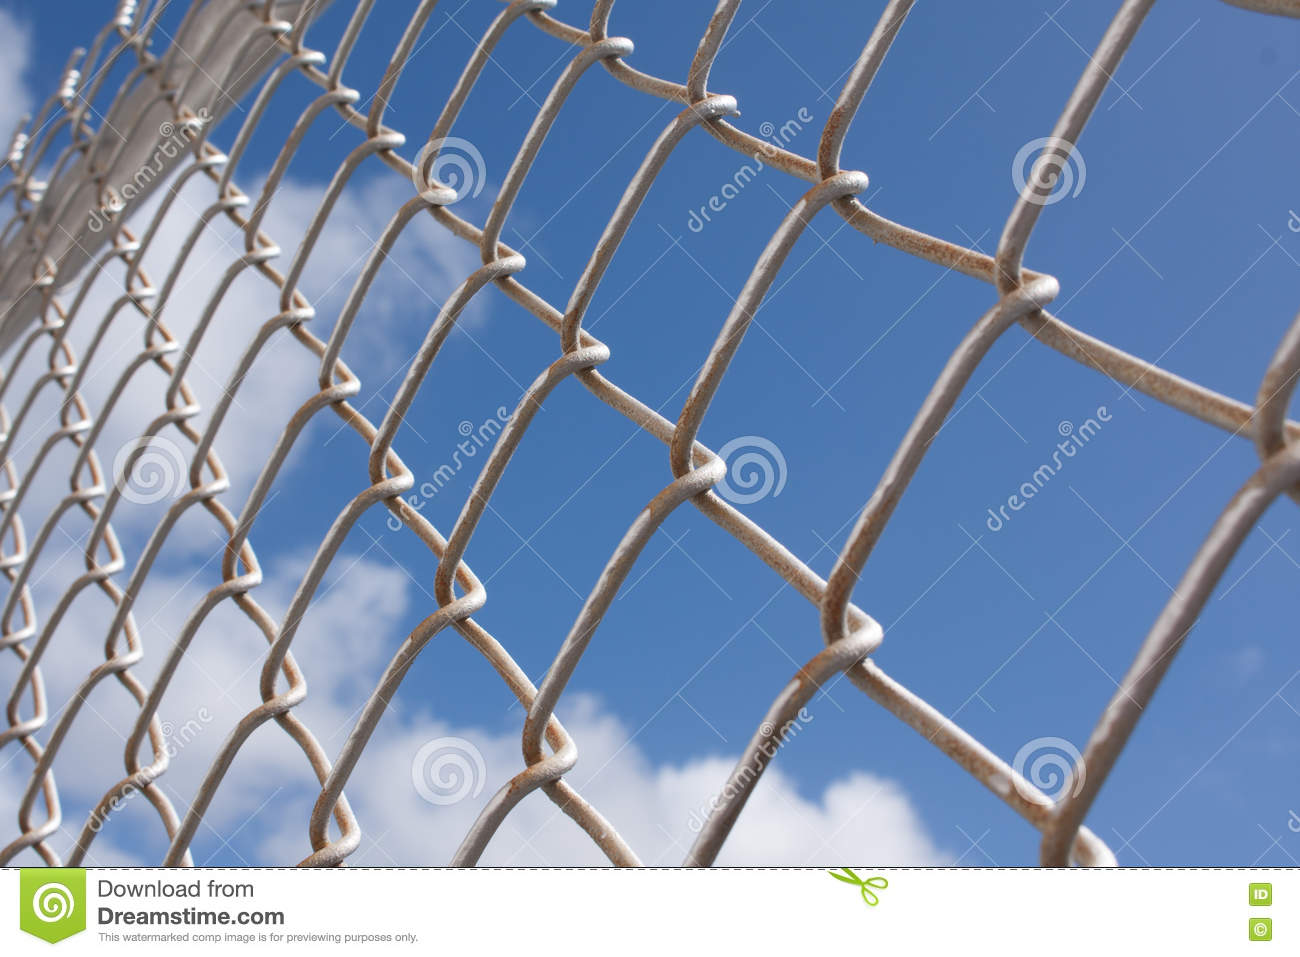 Metal wire fence stock image. Image of abstract, freedom - 66315711